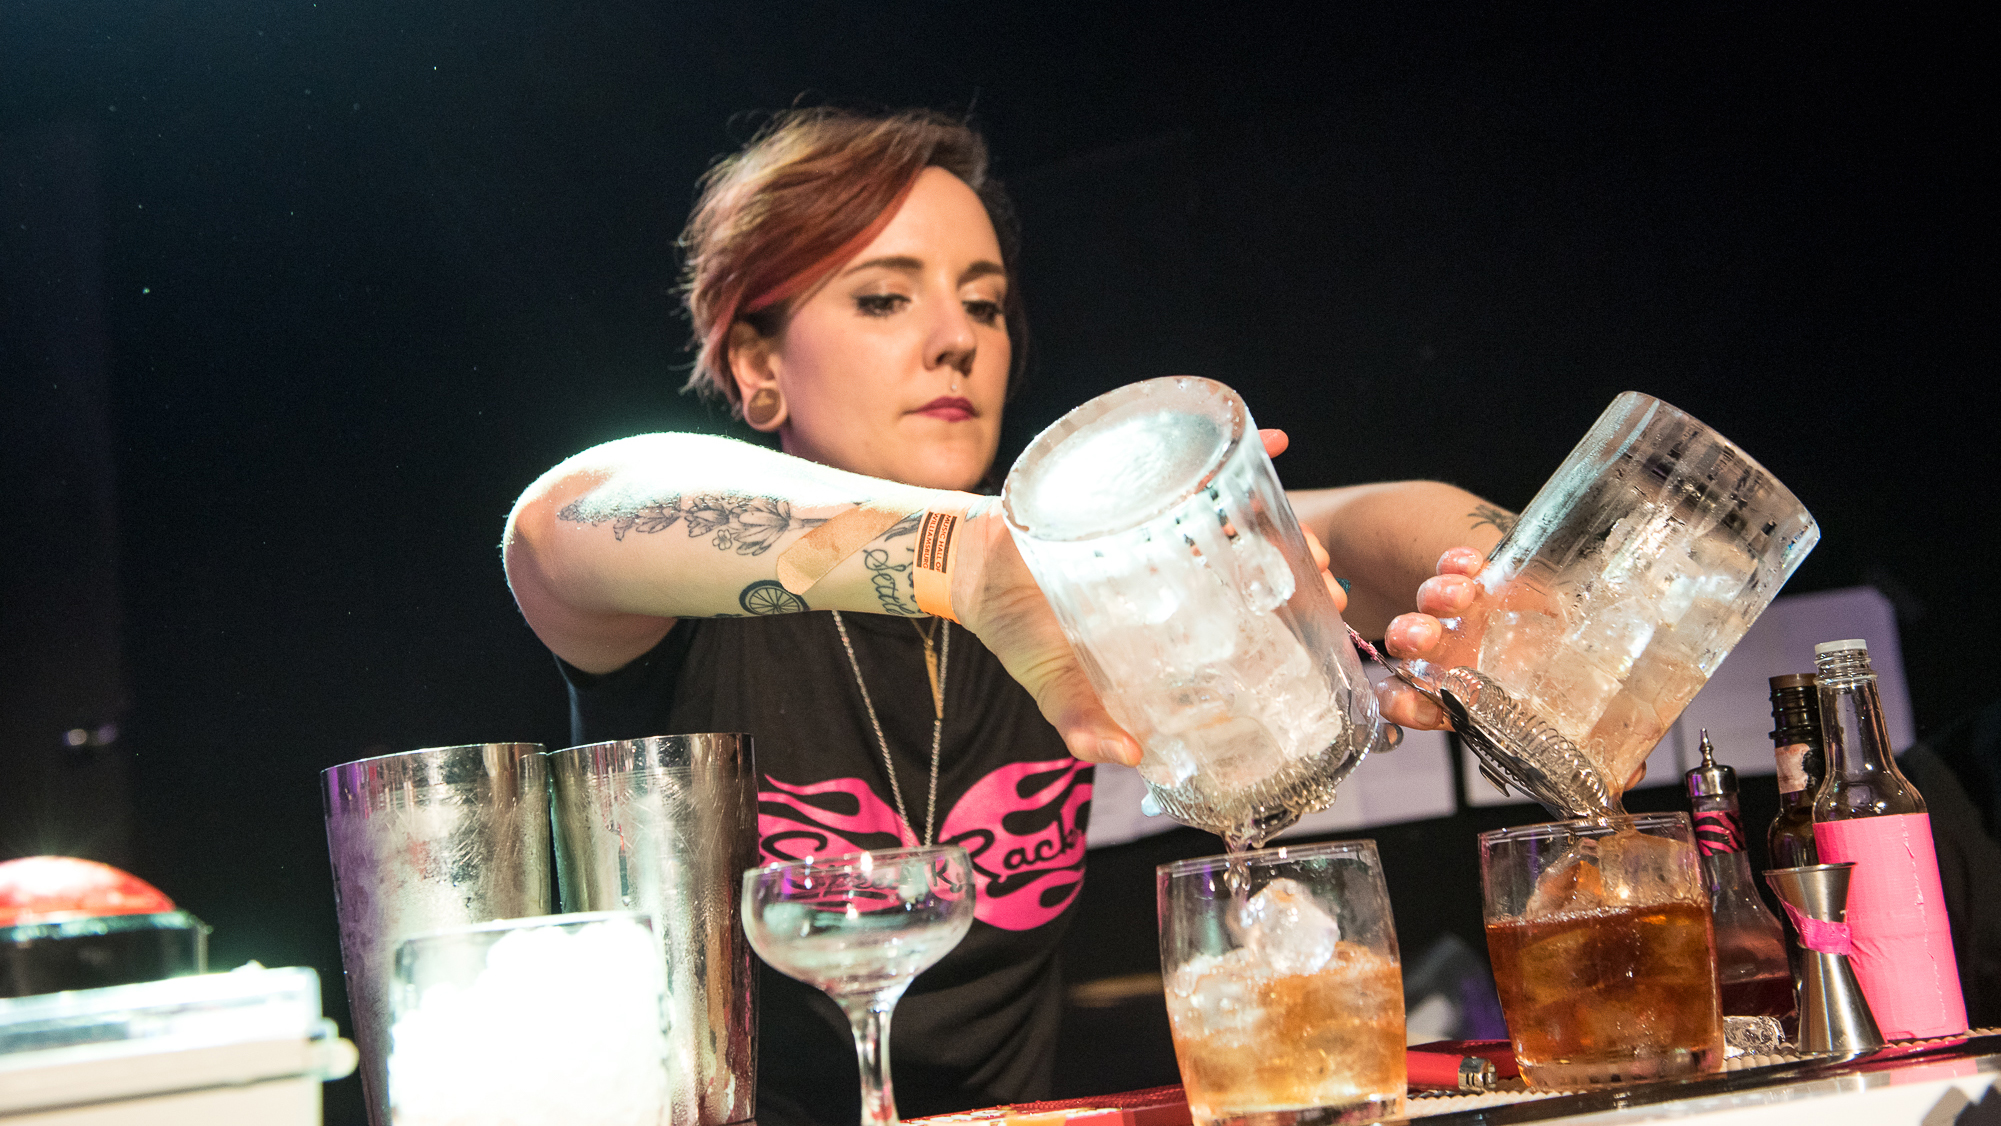 Watch the Fastest, Fiercest Female Mixologists in Action at Speed Rack This Weekend